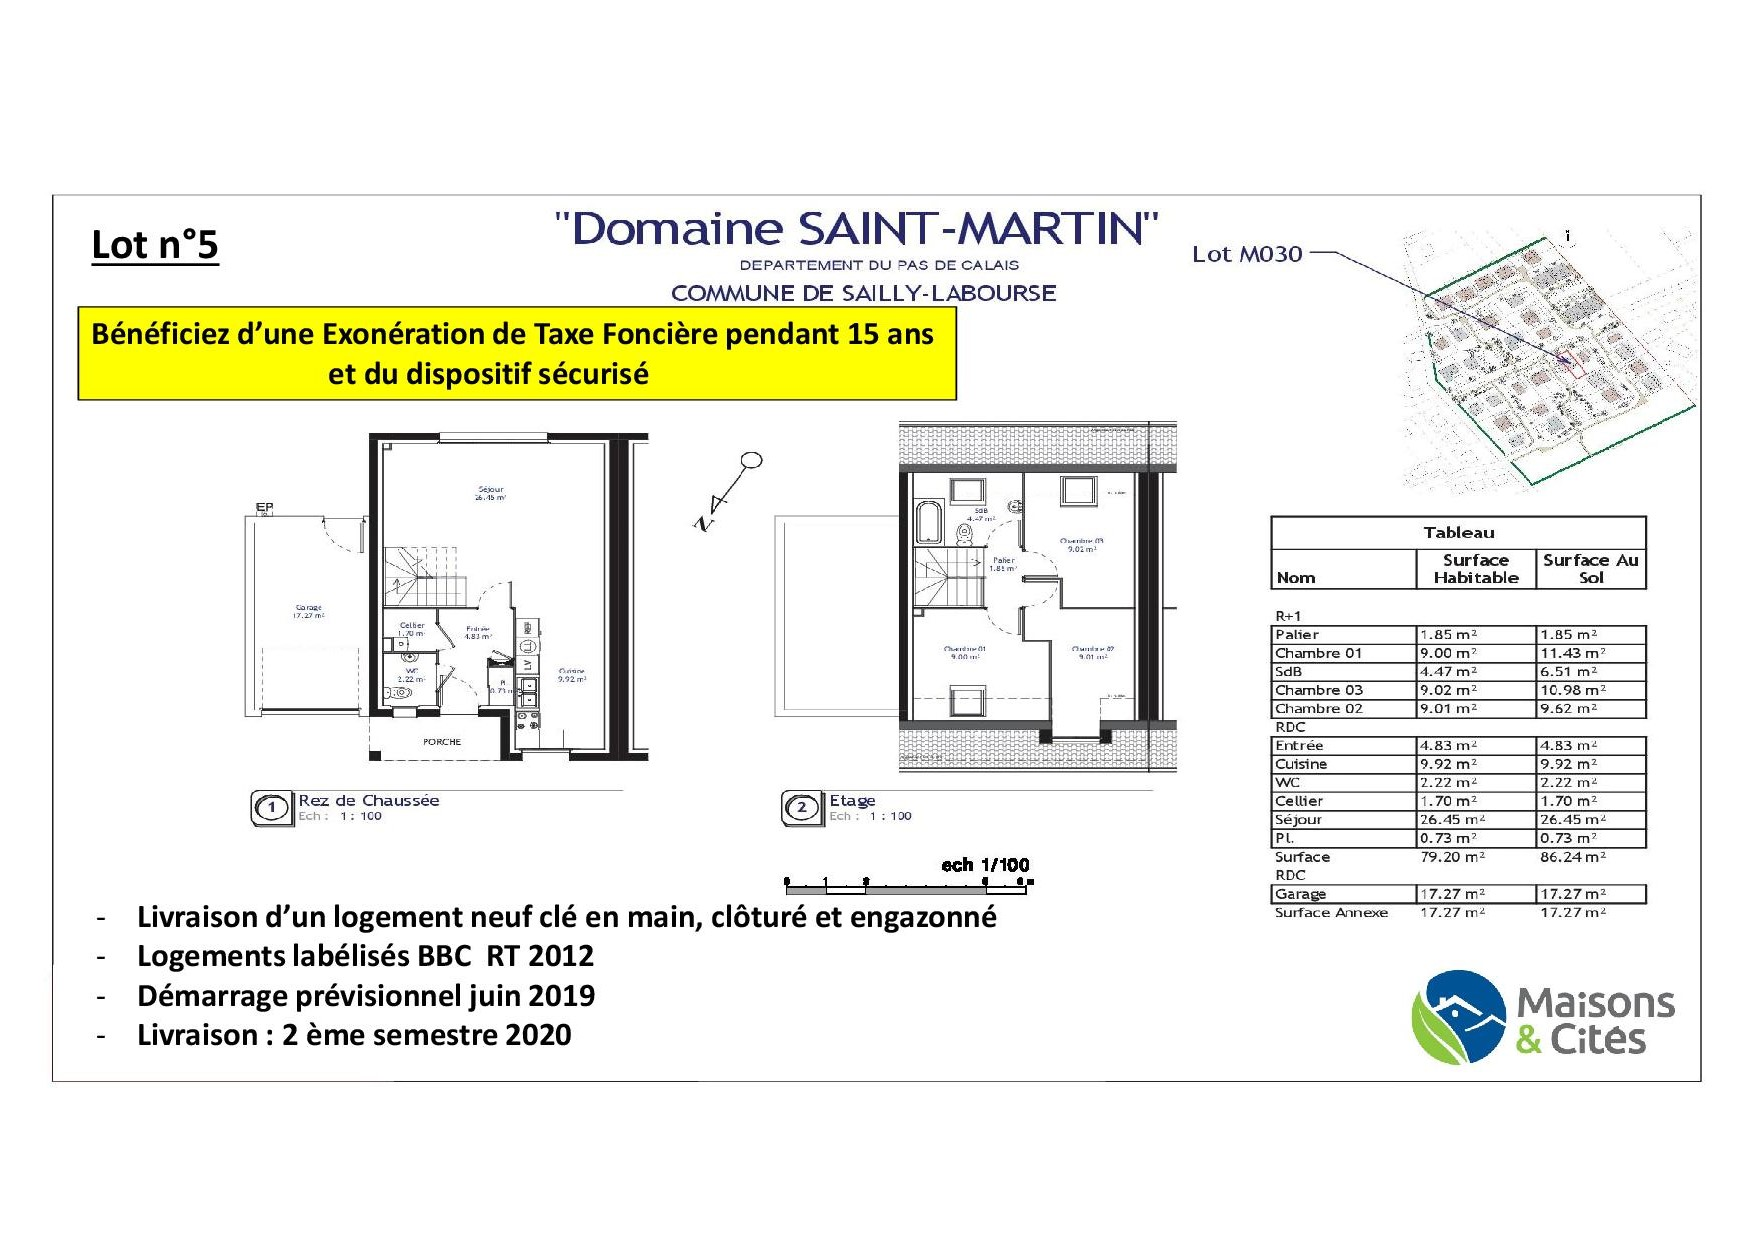 « Le Domaine de Saint Martin » – Sailly-Labourse – Lot 5